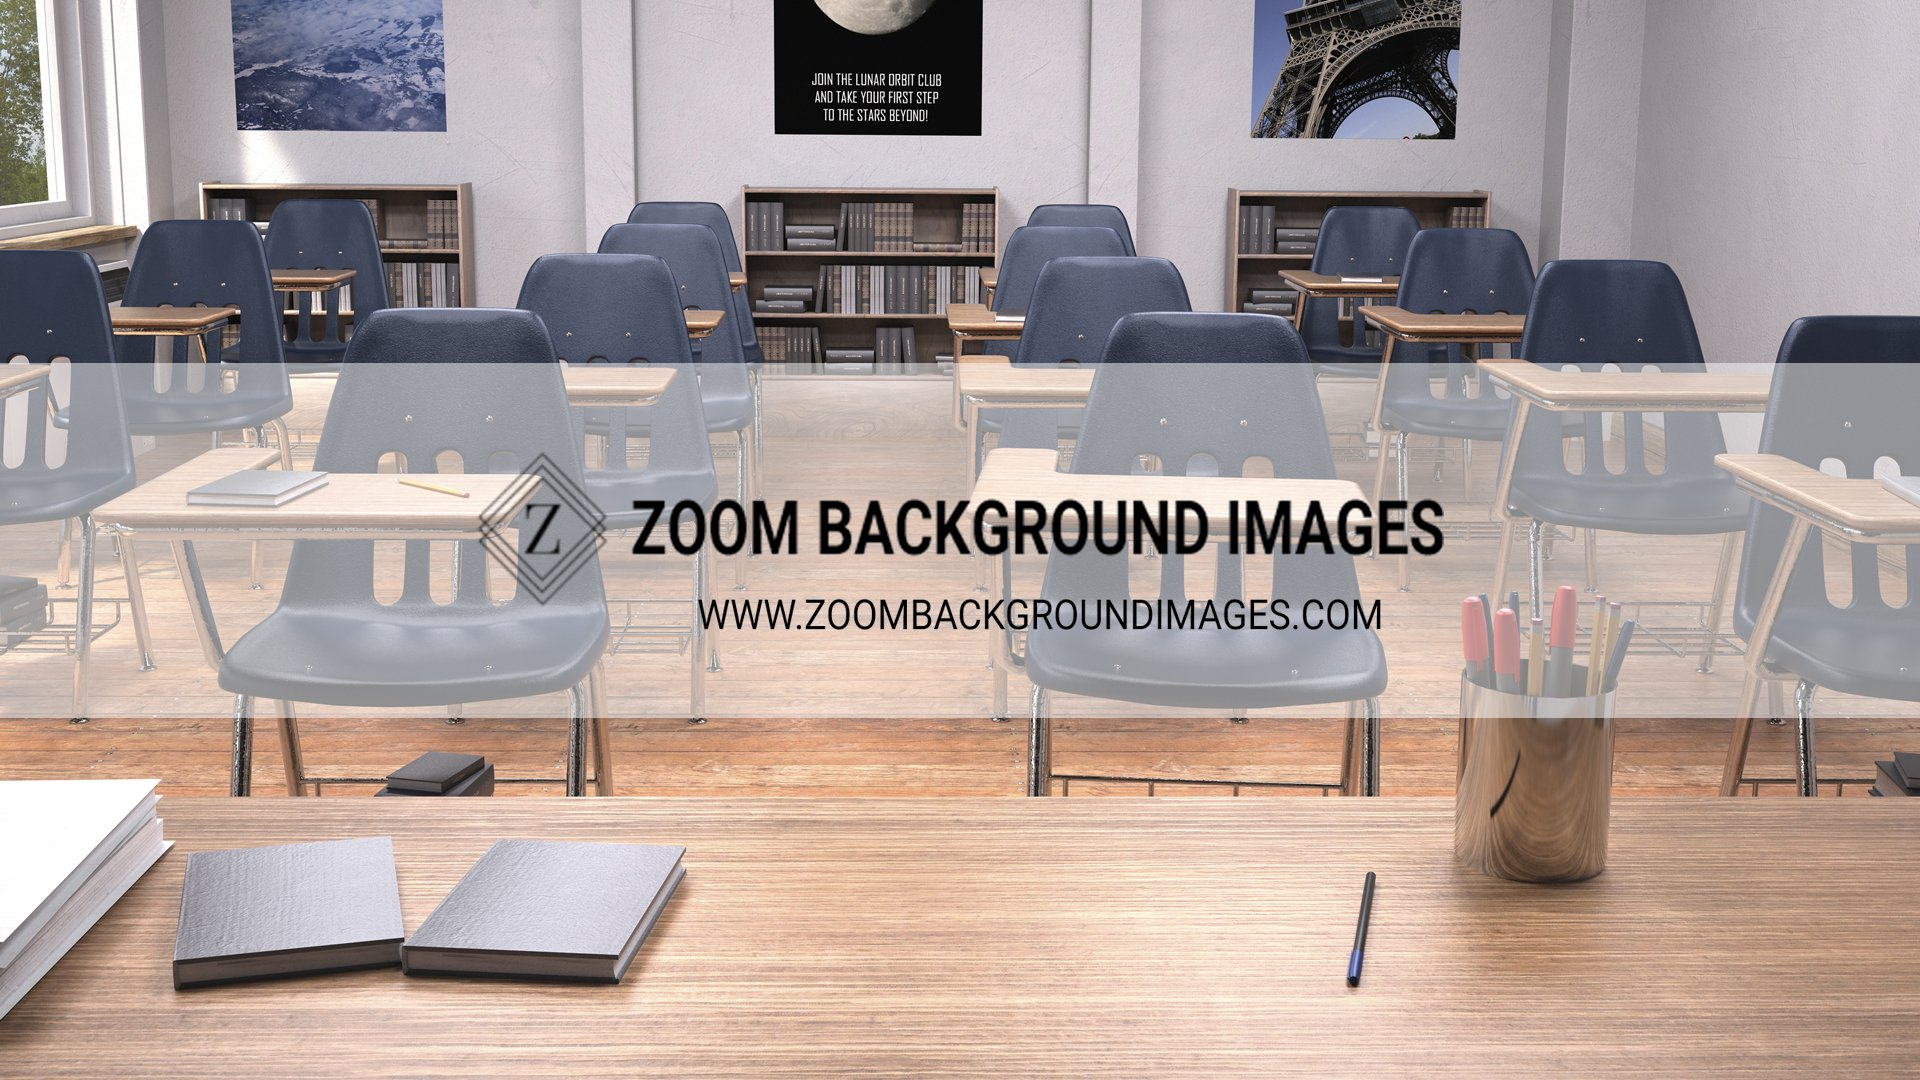 back to school themed virtual backgrounds for zoom meetings for teachers and students